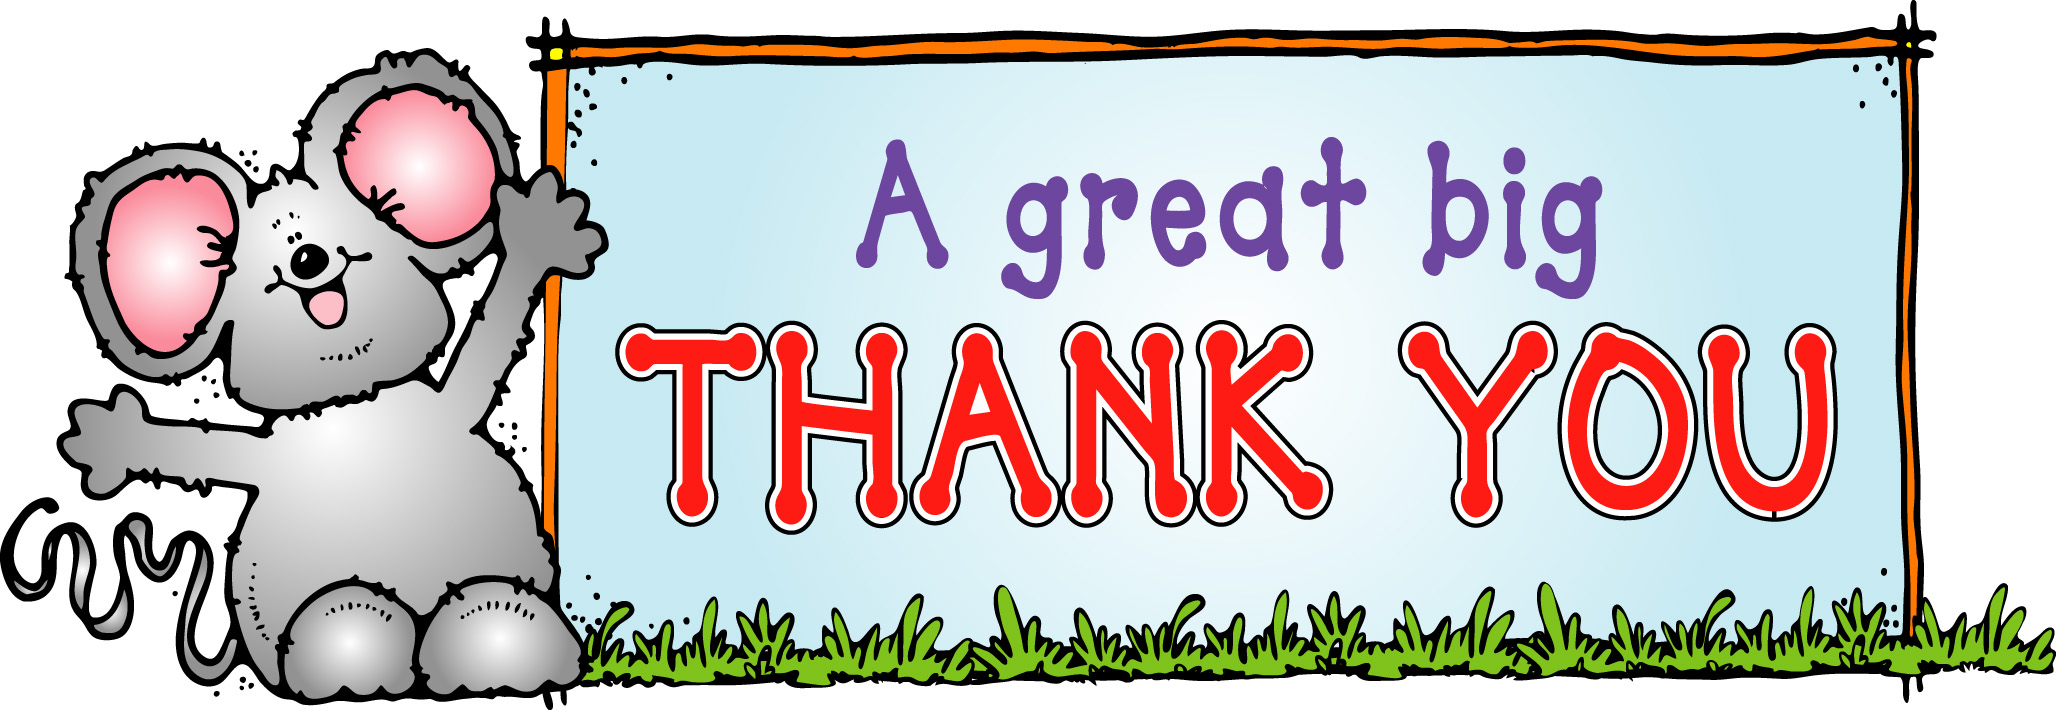 Thank You Clipart - JPEG Image #1383